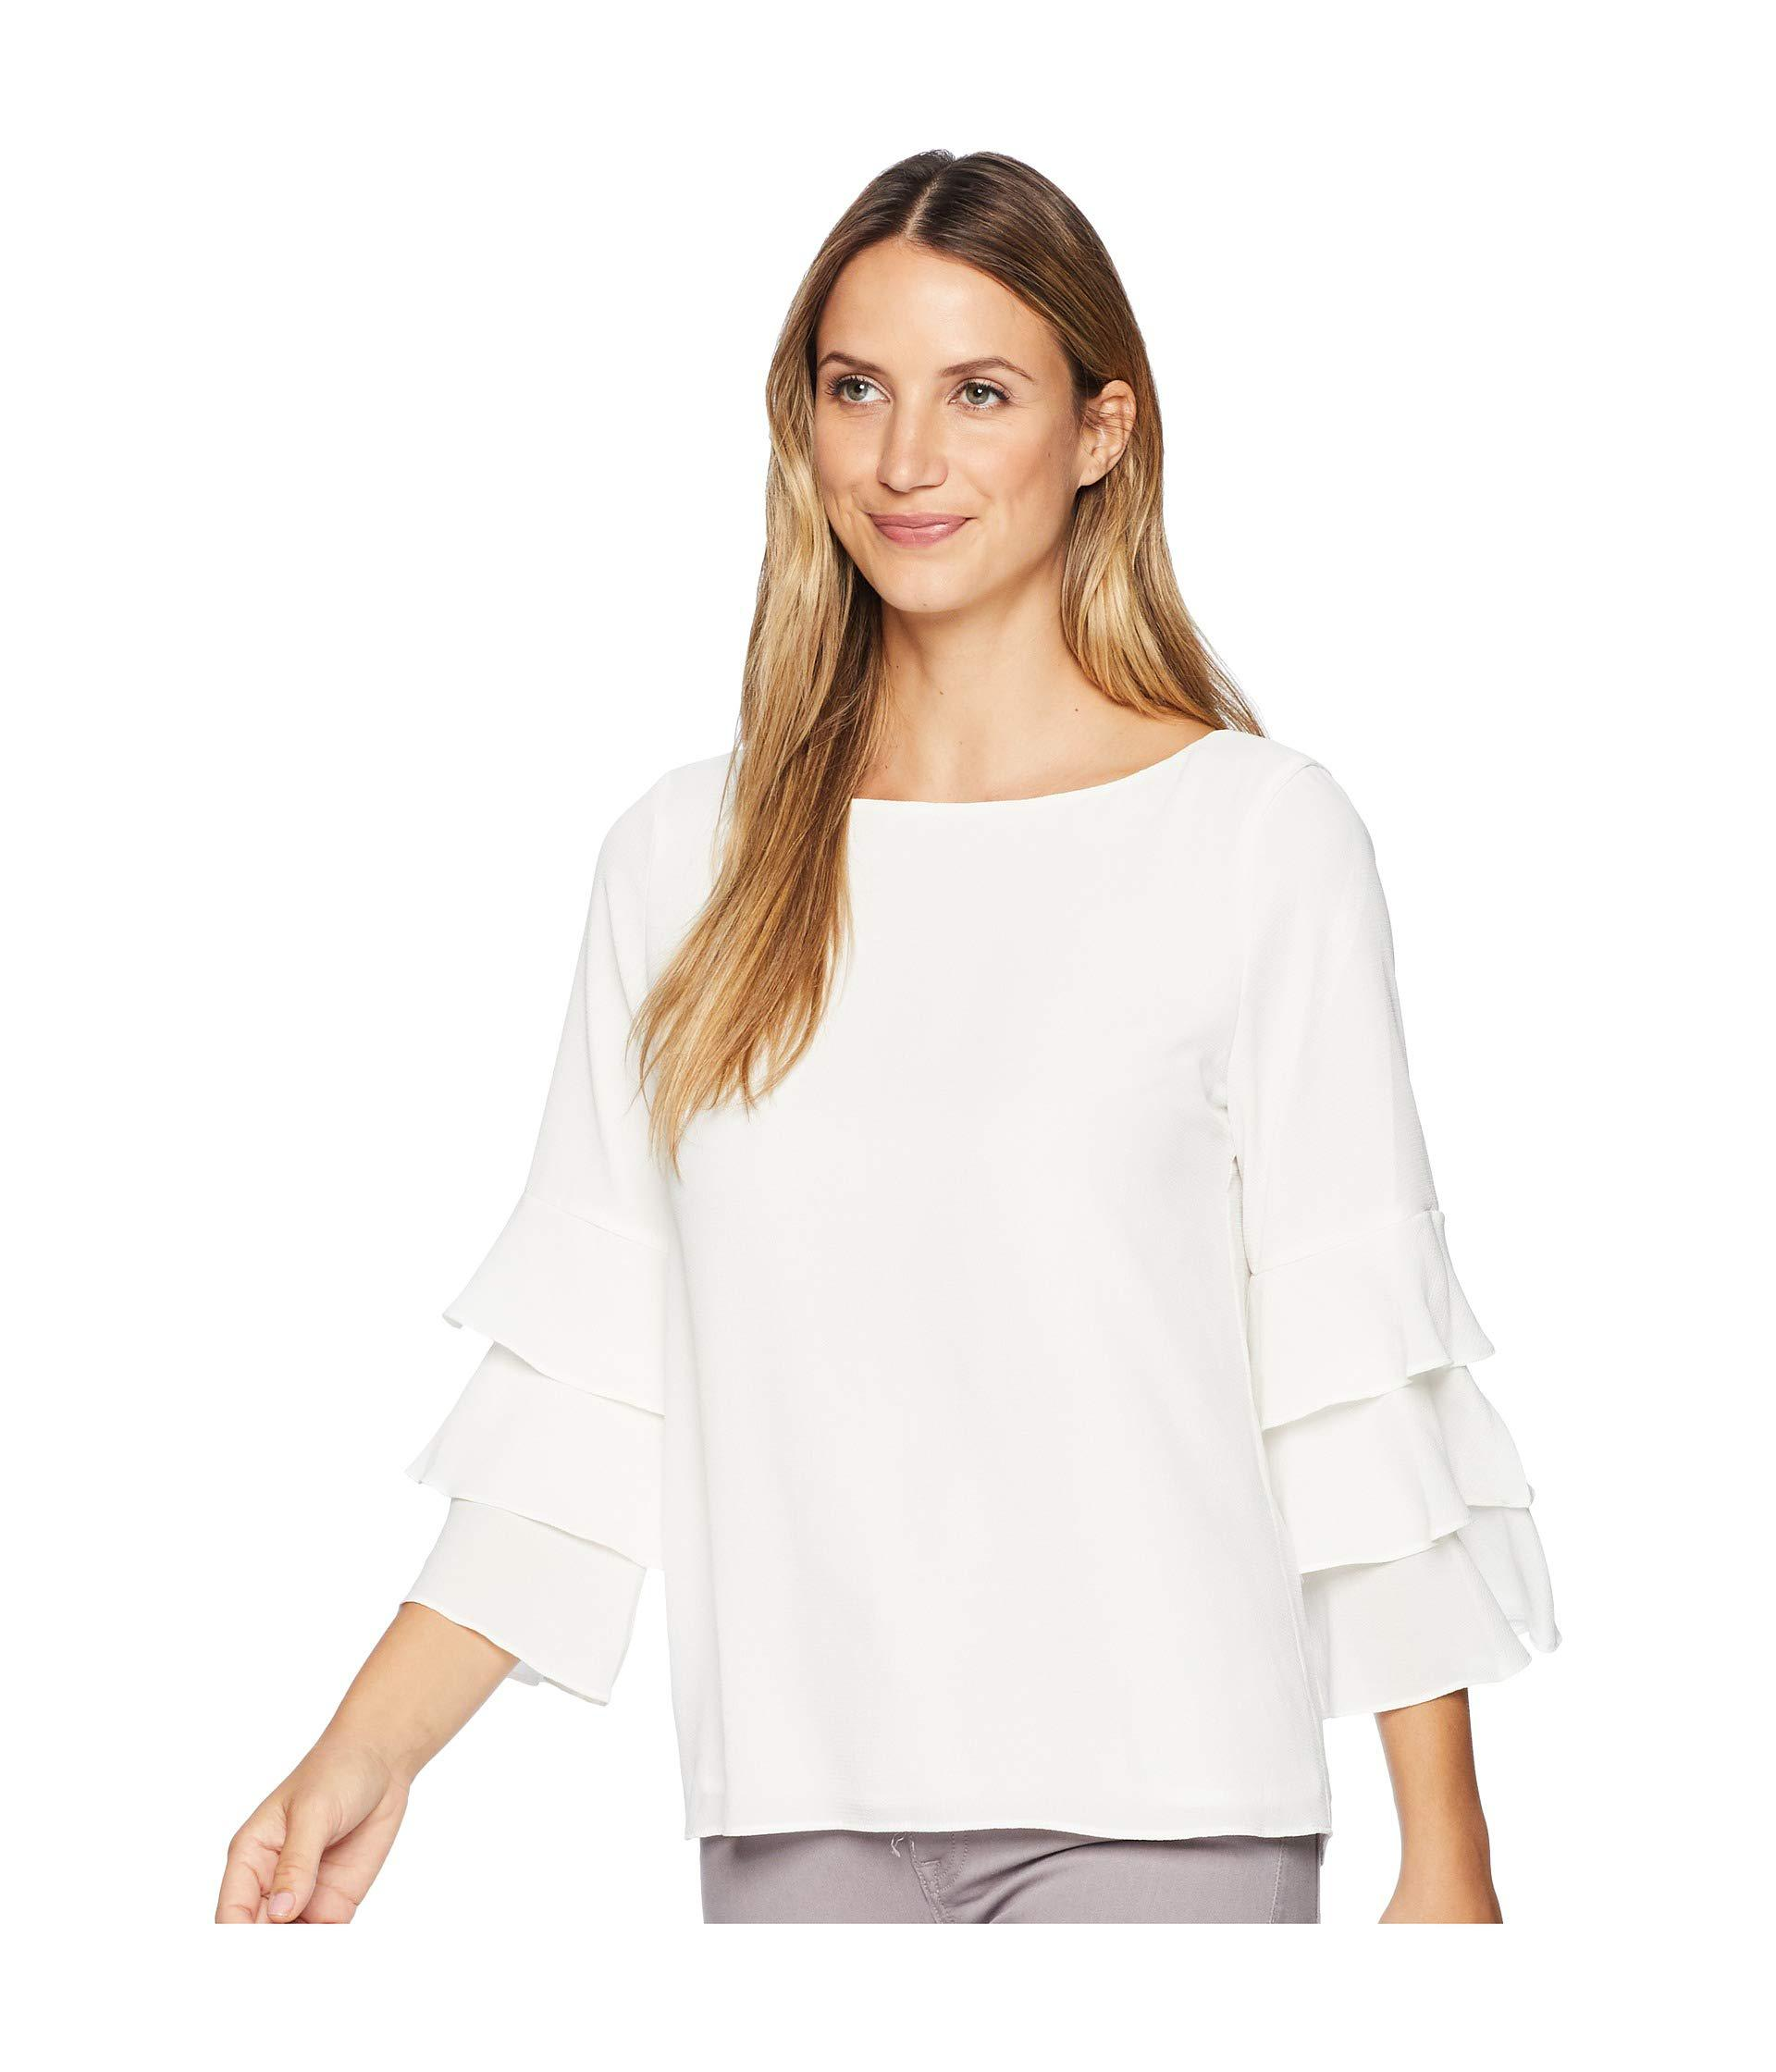 905a663fc38 Lyst - Calvin Klein Three Tier Sleeve Textured Blouse (soft White) Women s  Blouse in White - Save 39%